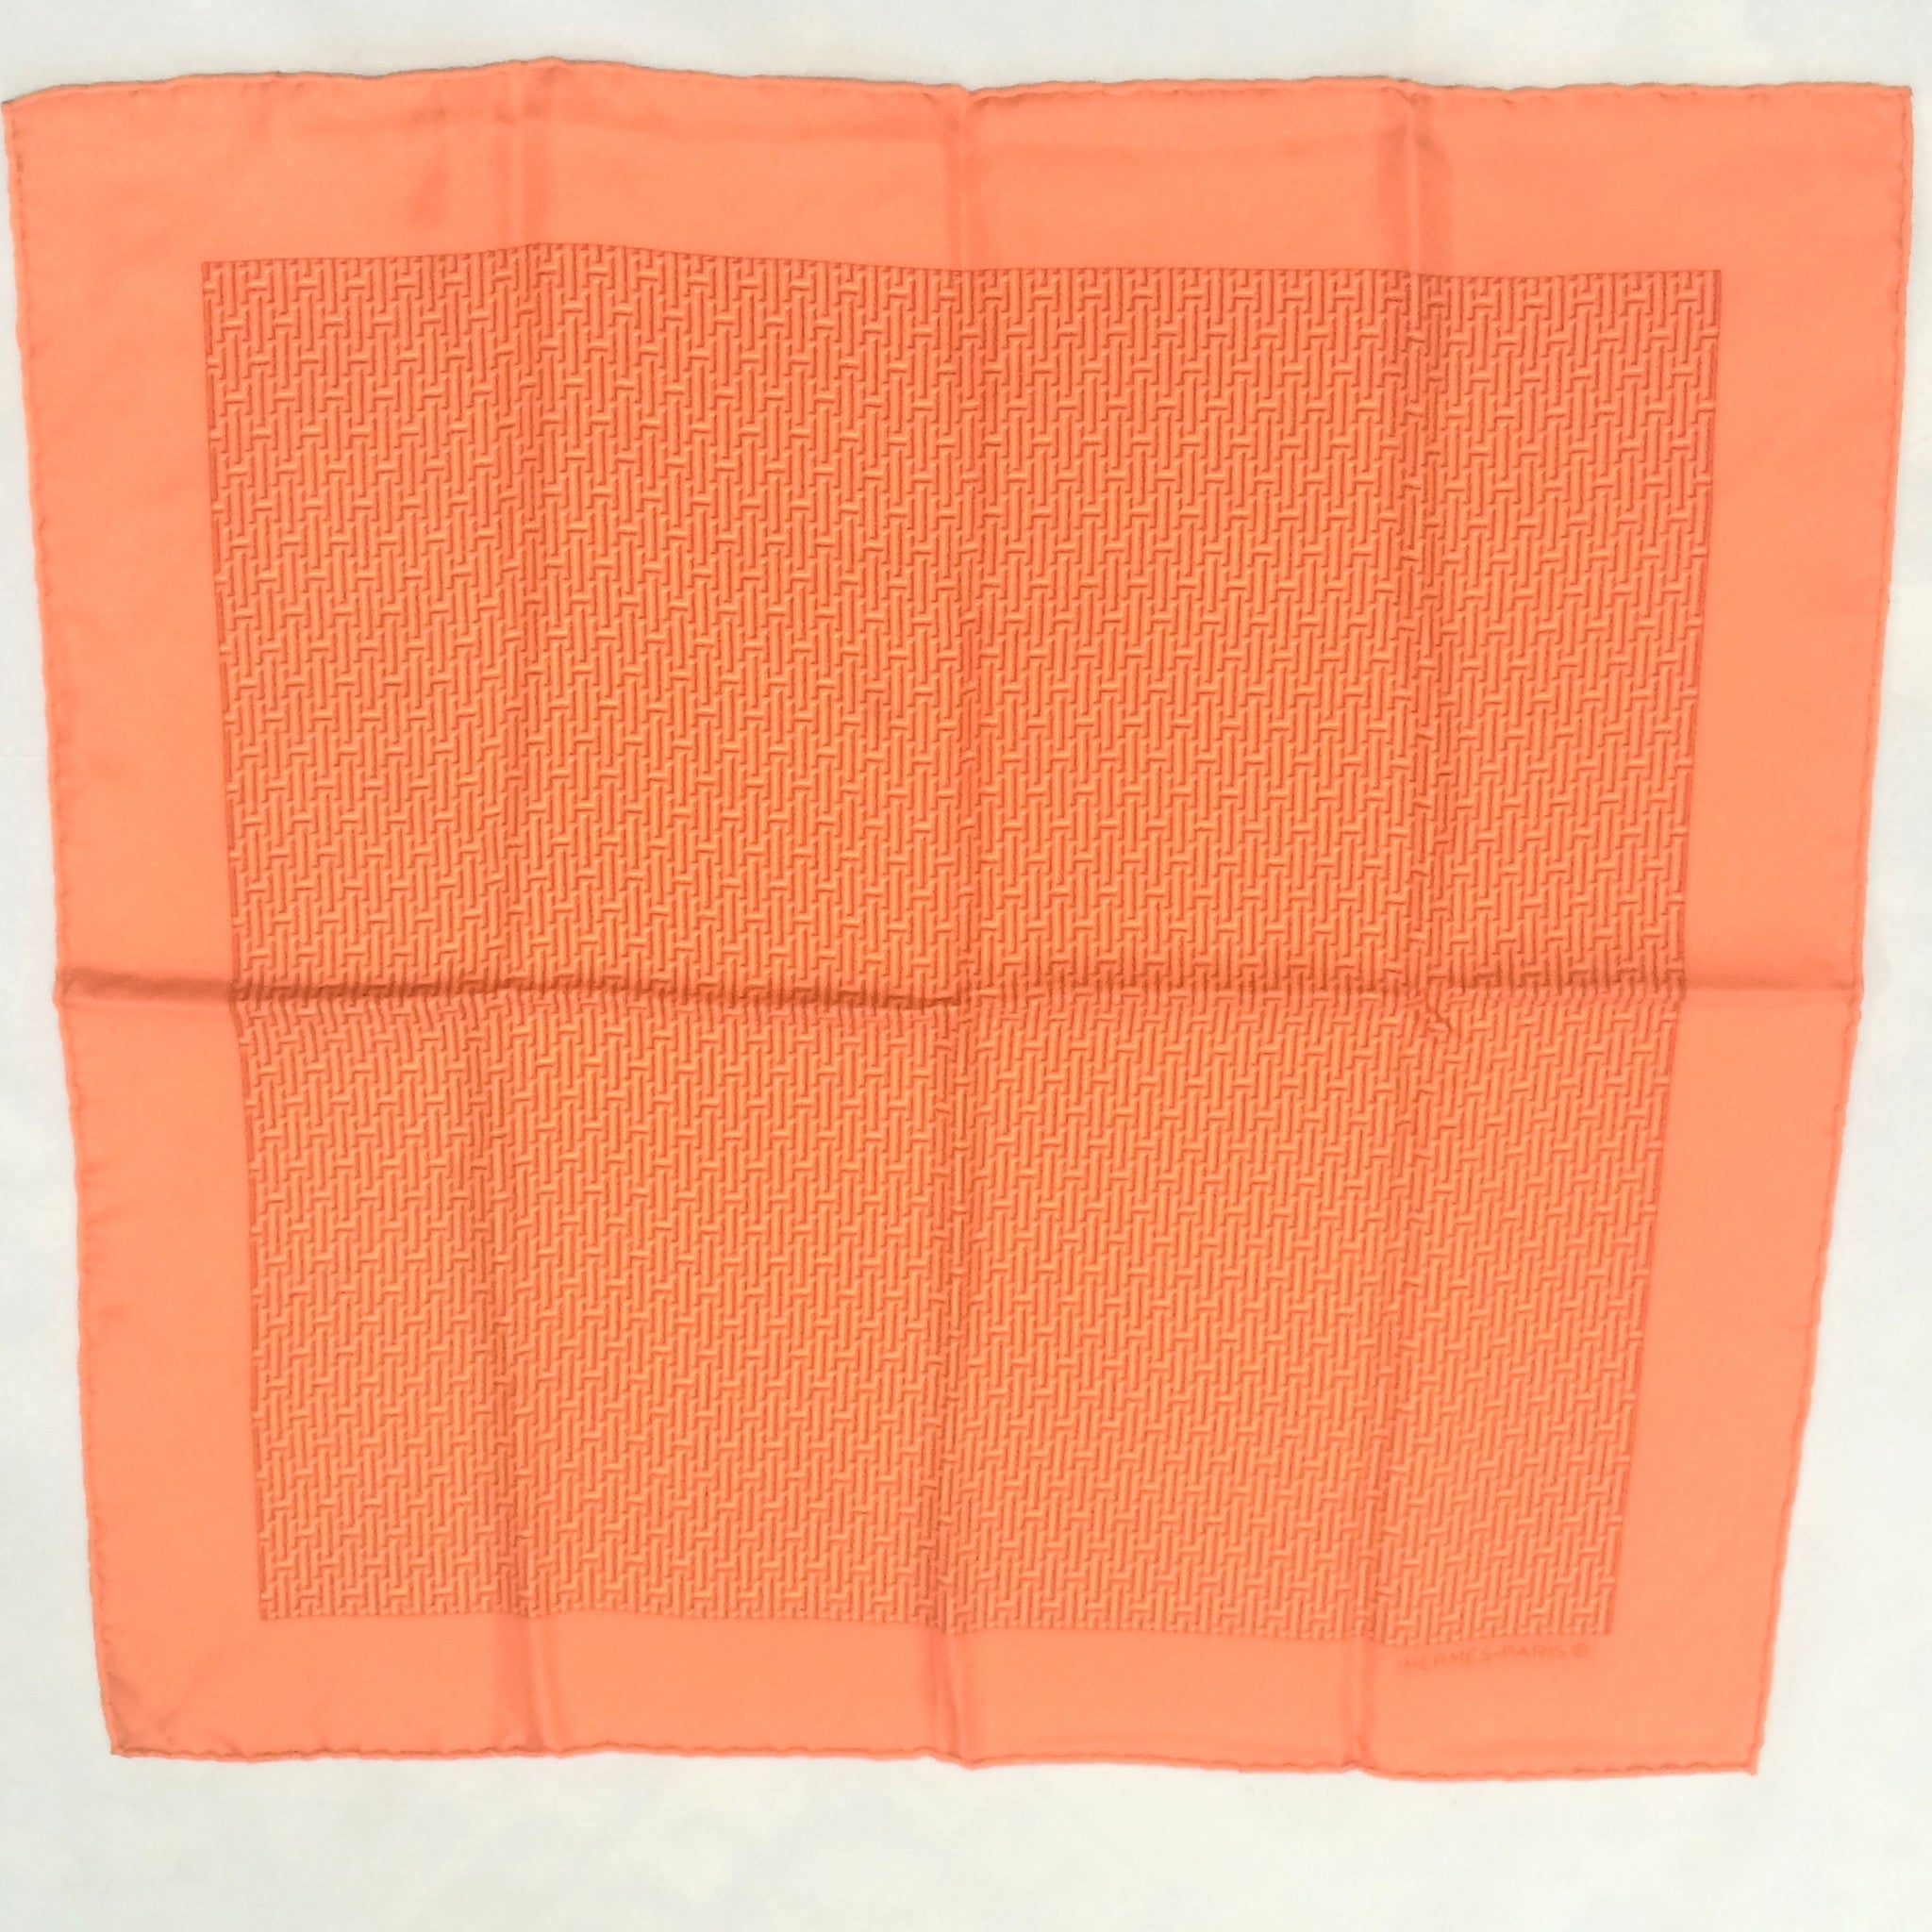 "MINT. Vintage HERMES mini carre twill orange and logo print silk scarf. Classic and elegant scarf for daily use. 42cm, 16.5"" width"